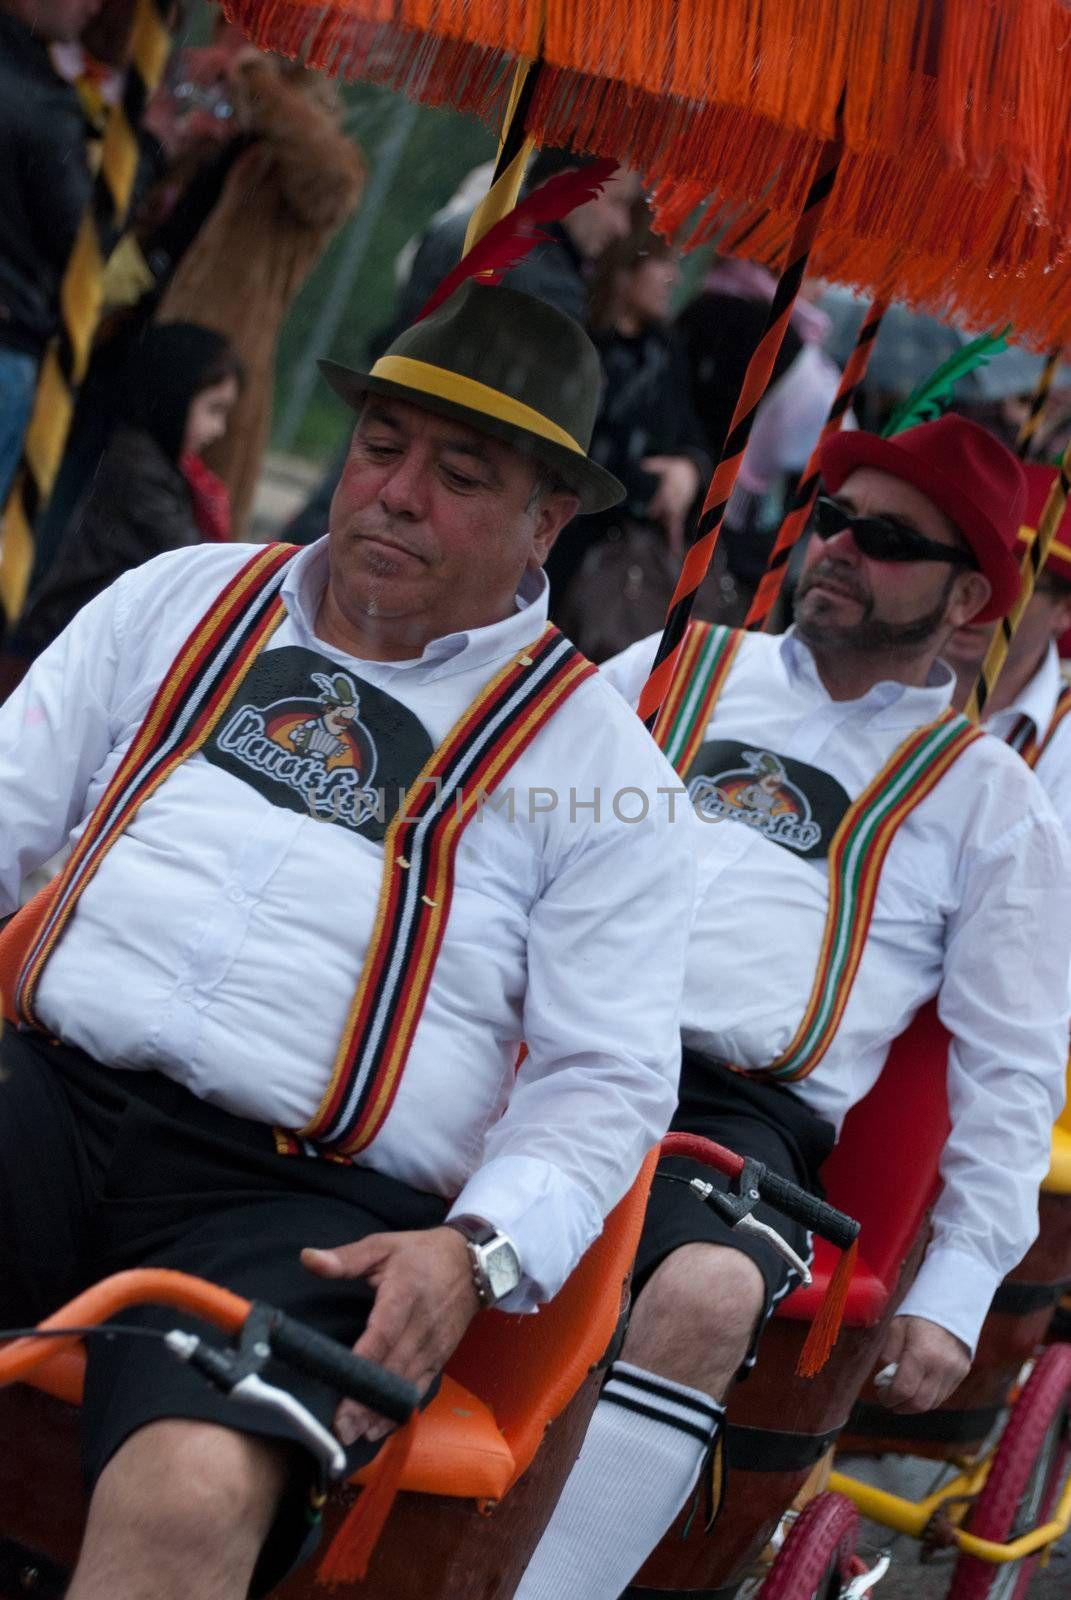 OVAR, PORTUGAL - MARCH 8: Group 'Pierrots'  during the Carnival Parade on March 8, 2011 in Ovar, Portugal.